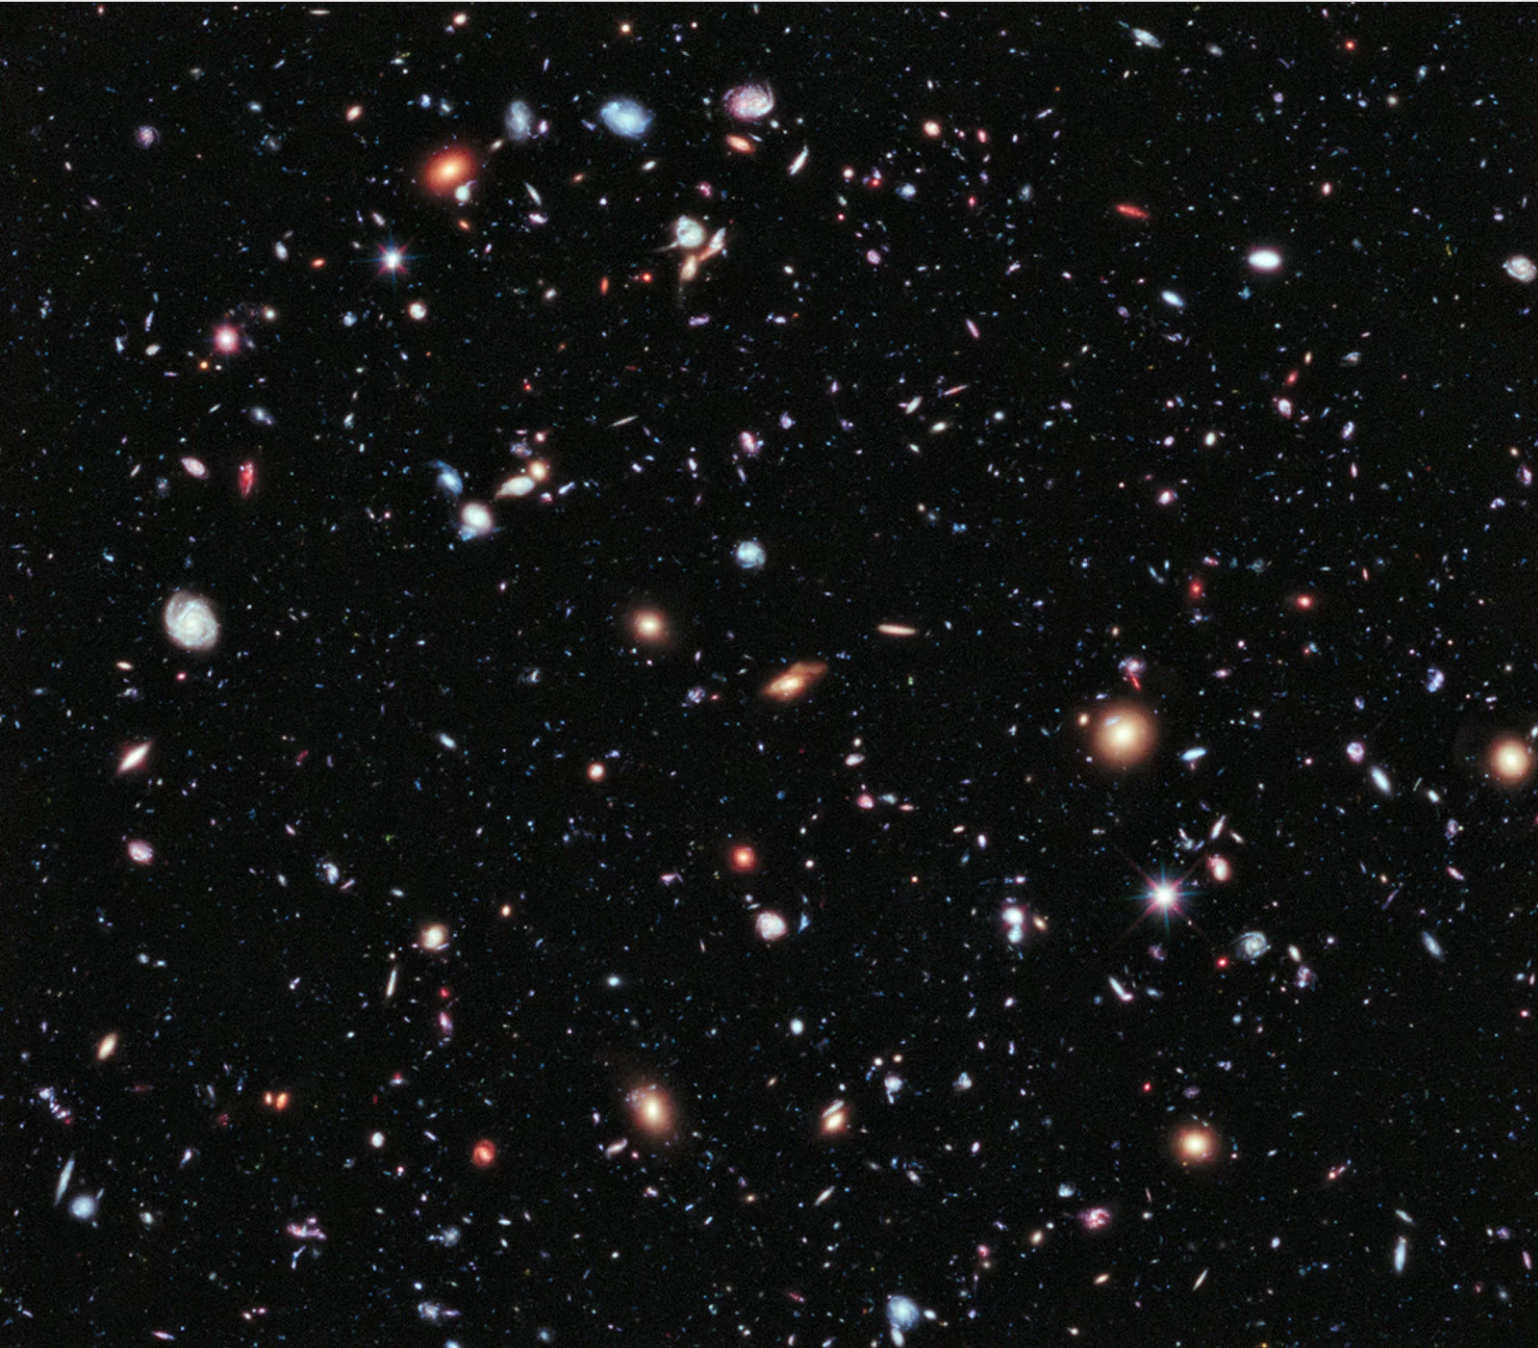 The eXtreme Deep Field (XDF), a combination of 10 years' worth of telescopic views by the Hubble Space Telescope of the same patch of sky.  Taken from  https://www.space.com/17755-farthest-universe-view-hubble-space-telescope.html